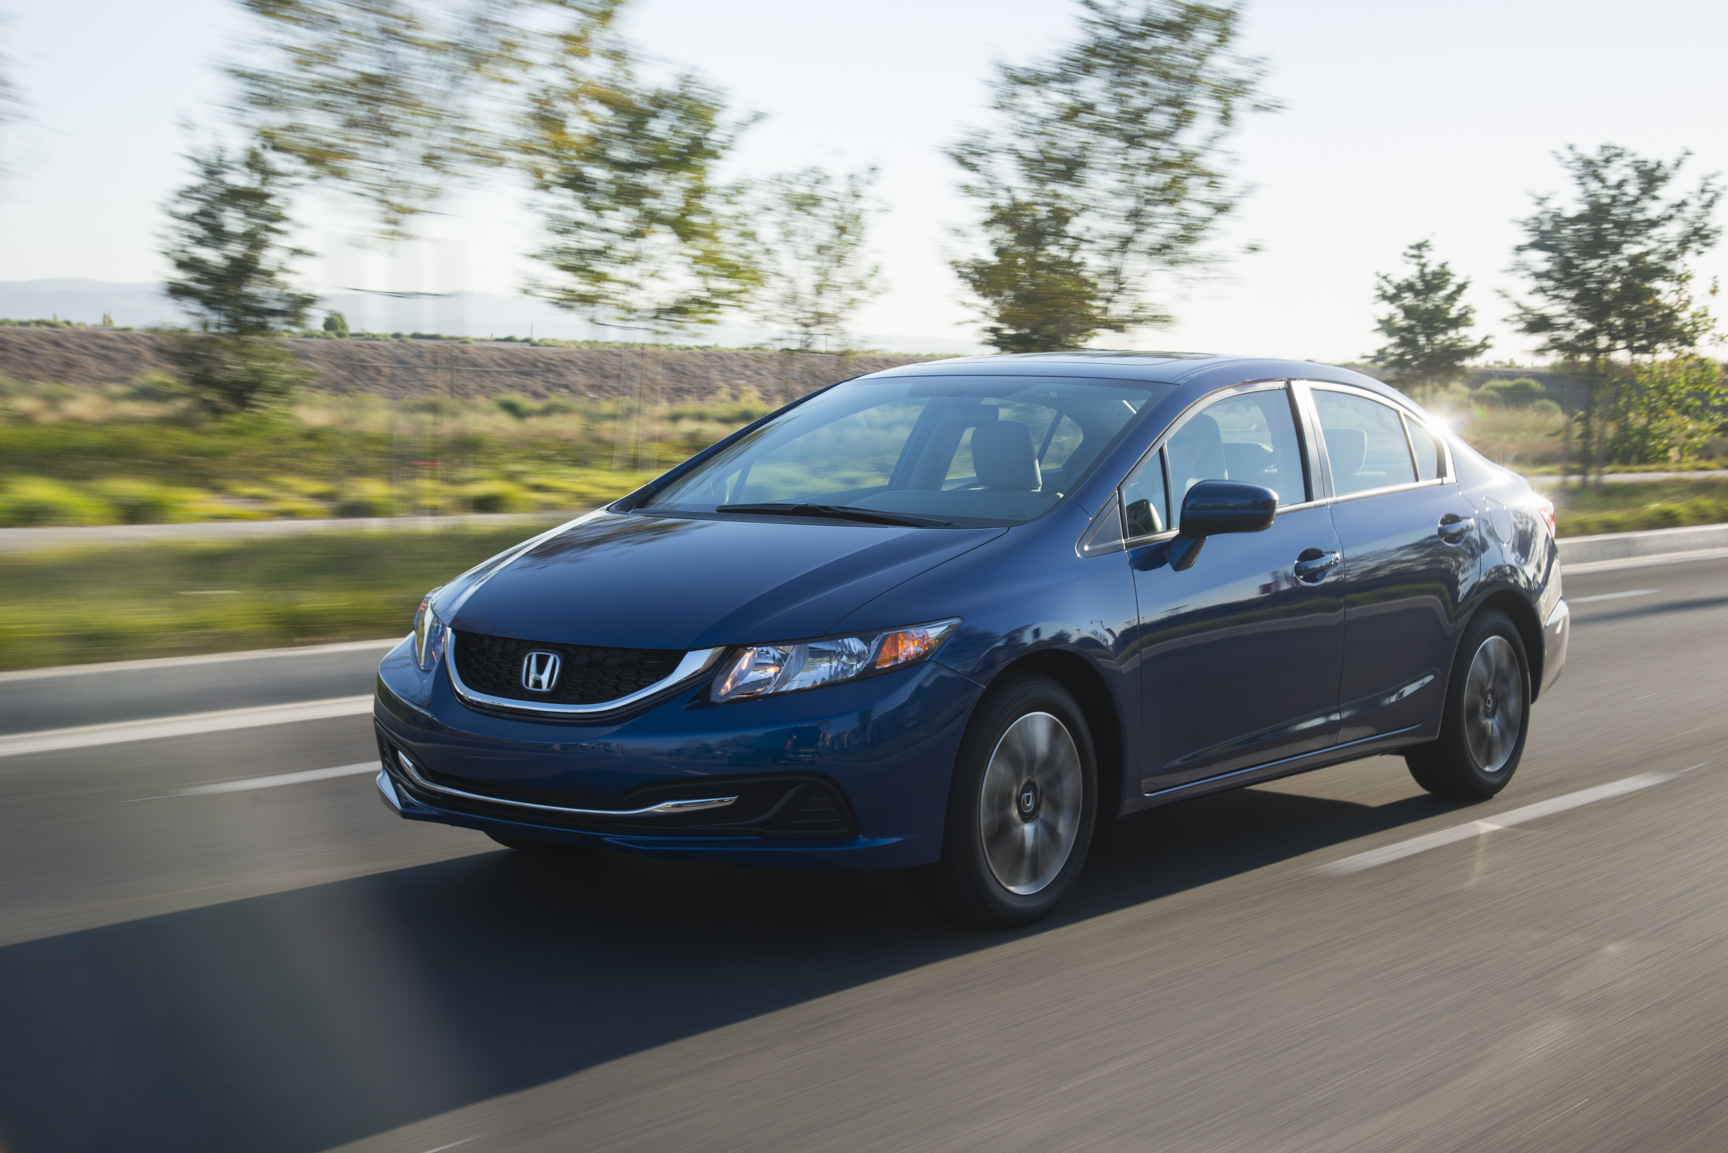 Small Car: 2015 Honda Civic: Famous reliability has been the Civic's calling card for decades, but the secrets to its success are many.  No other automaker has been able to duplicate the Civic's well-rounded recipe.